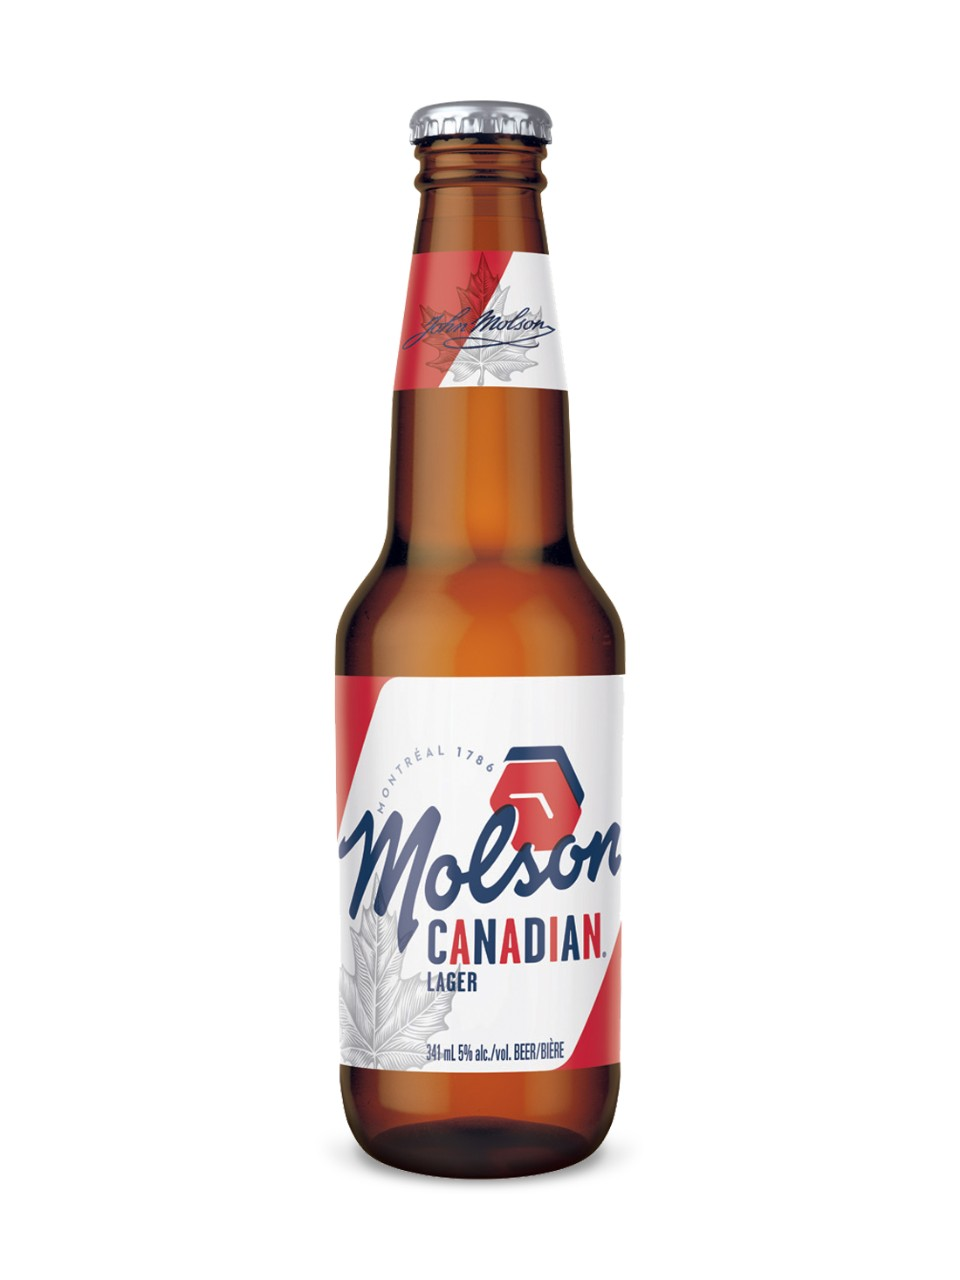 Molson Canadian Bottle Image